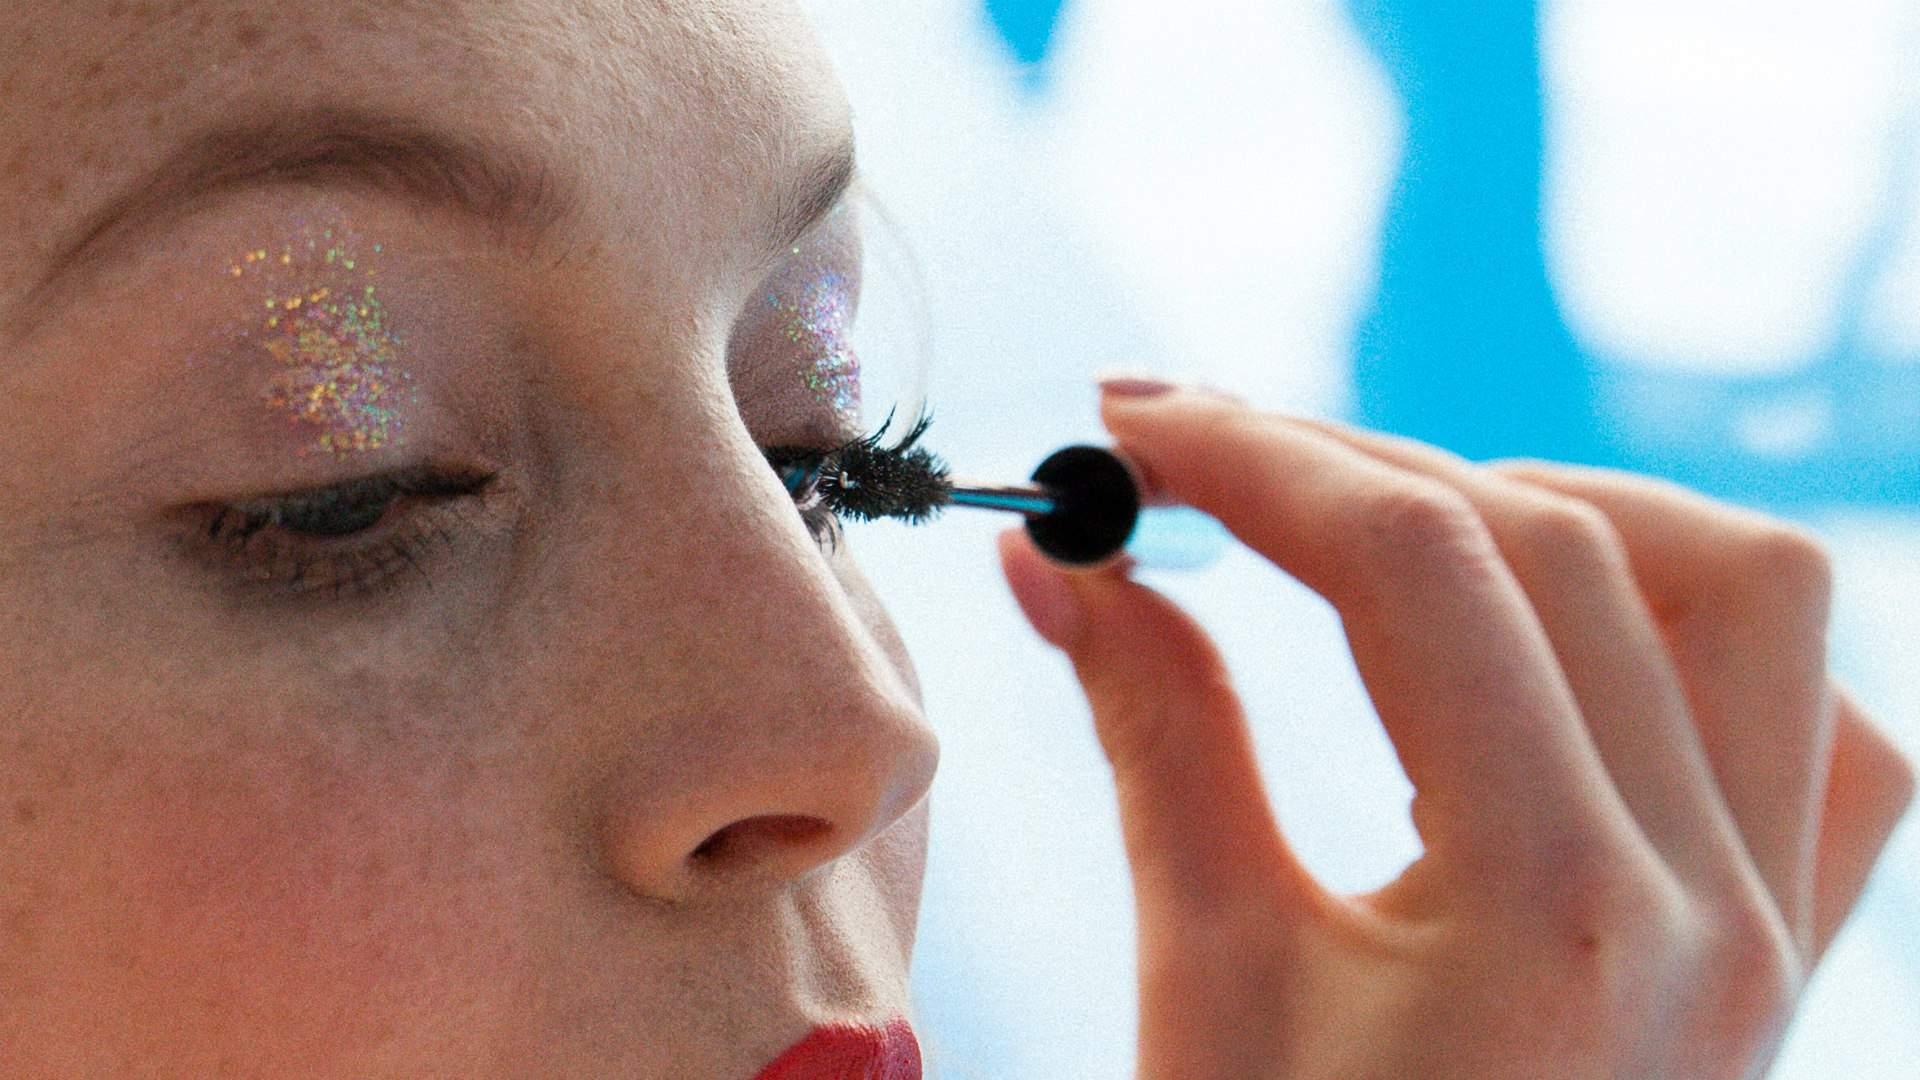 This Wellington Company Is Helping End Avoidable Blindness with Mascara